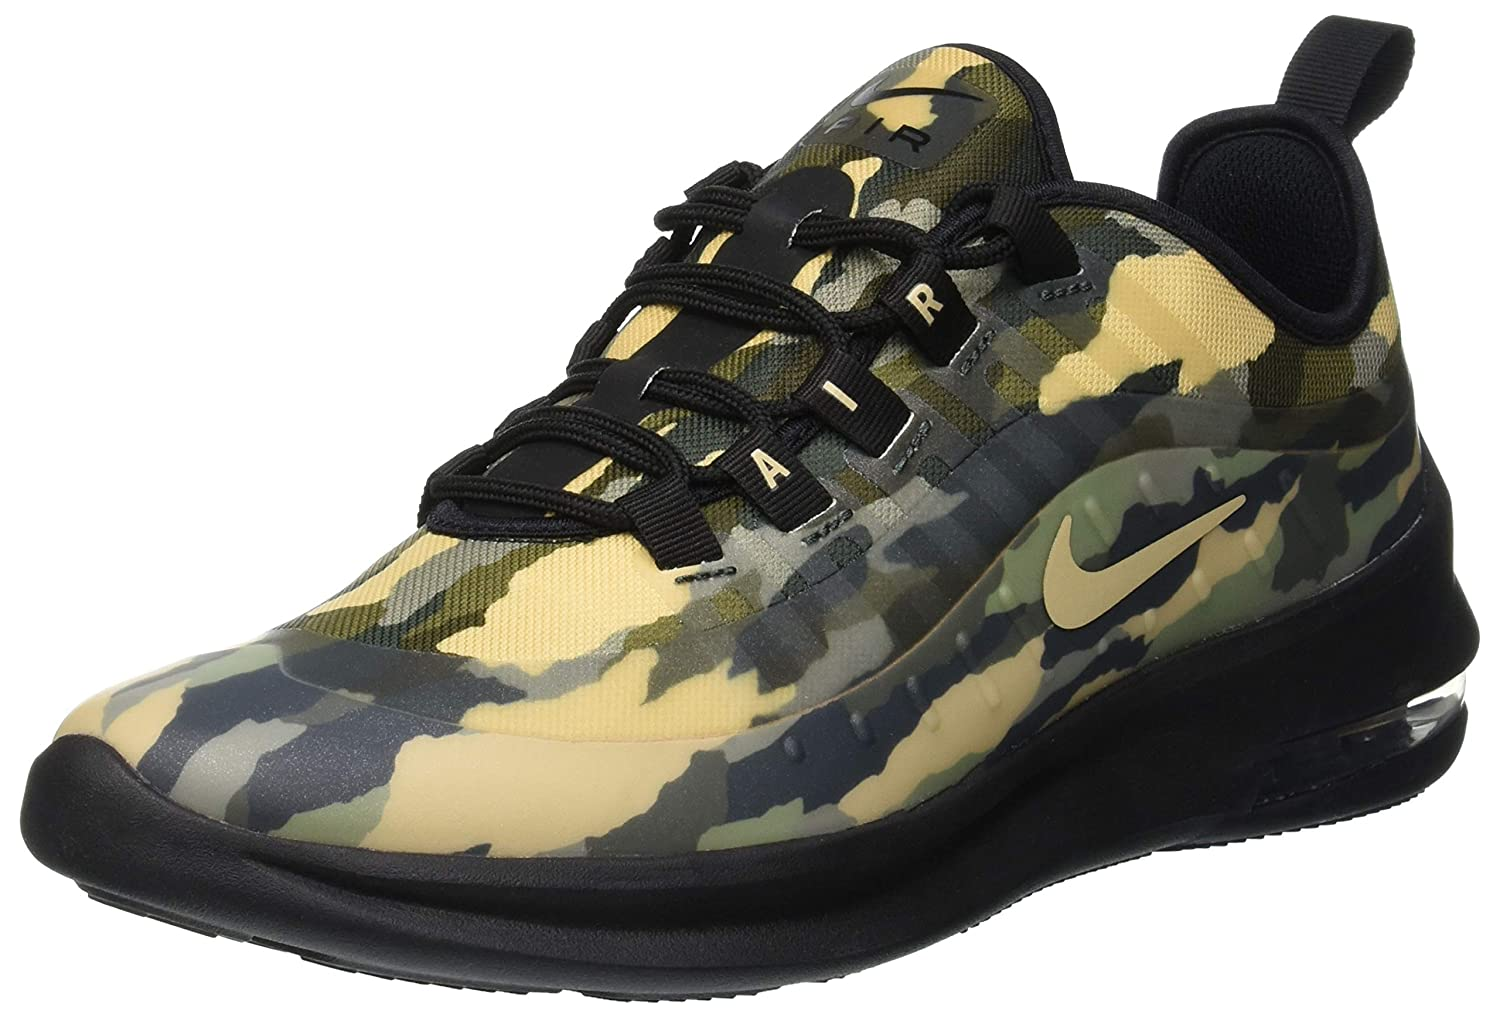 a5144fcfaff4d Amazon.com | Nike Air Max Axis Print (Gs) Kids Camo Running Shoes | Running